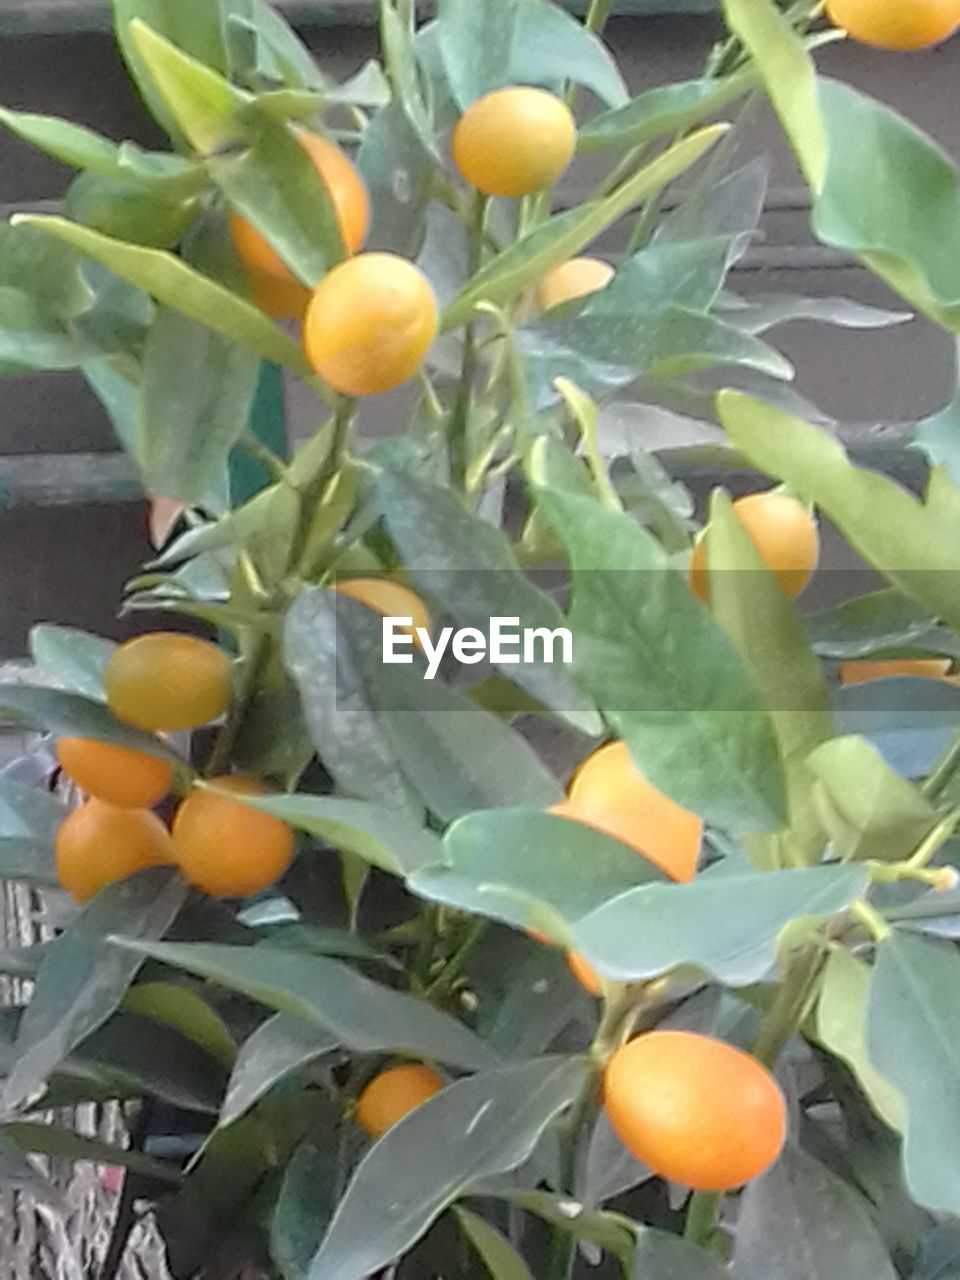 fruit, food and drink, orange - fruit, freshness, citrus fruit, food, leaf, growth, orange color, healthy eating, no people, day, green color, outdoors, close-up, orange tree, nature, plant, tree, beauty in nature